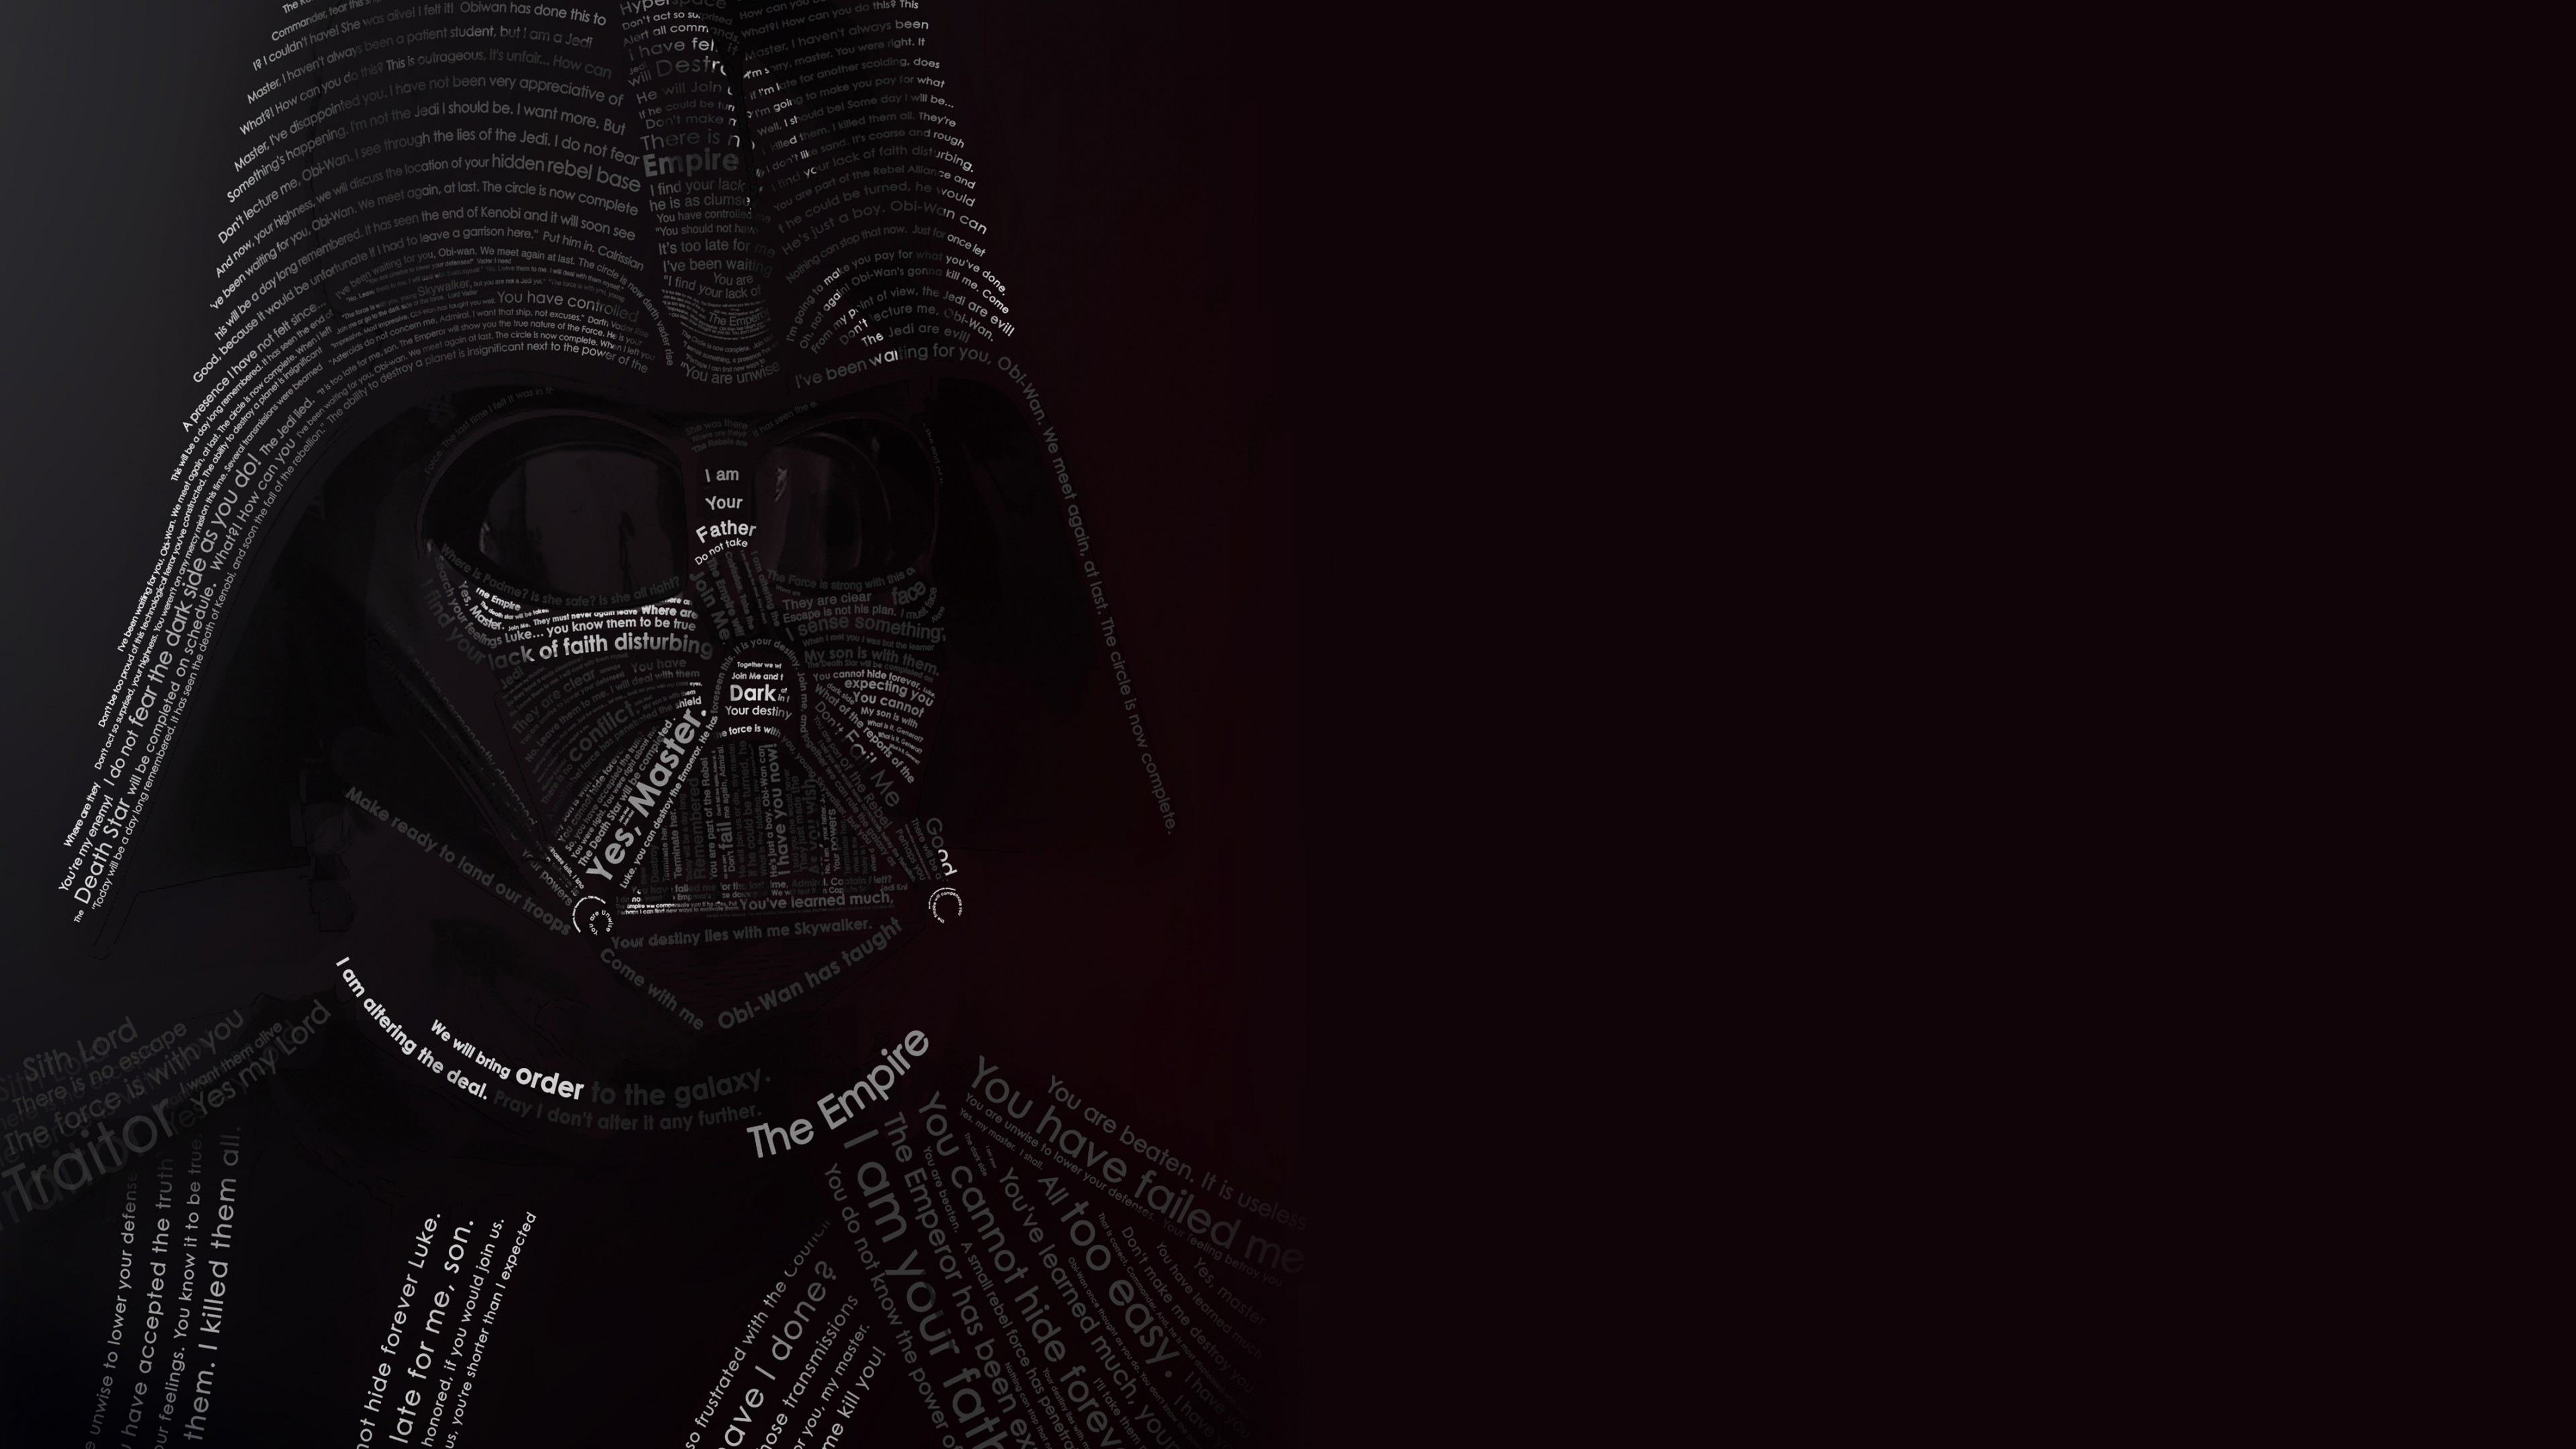 4k Darth Vader Wallpaper Posted By Christopher Thompson